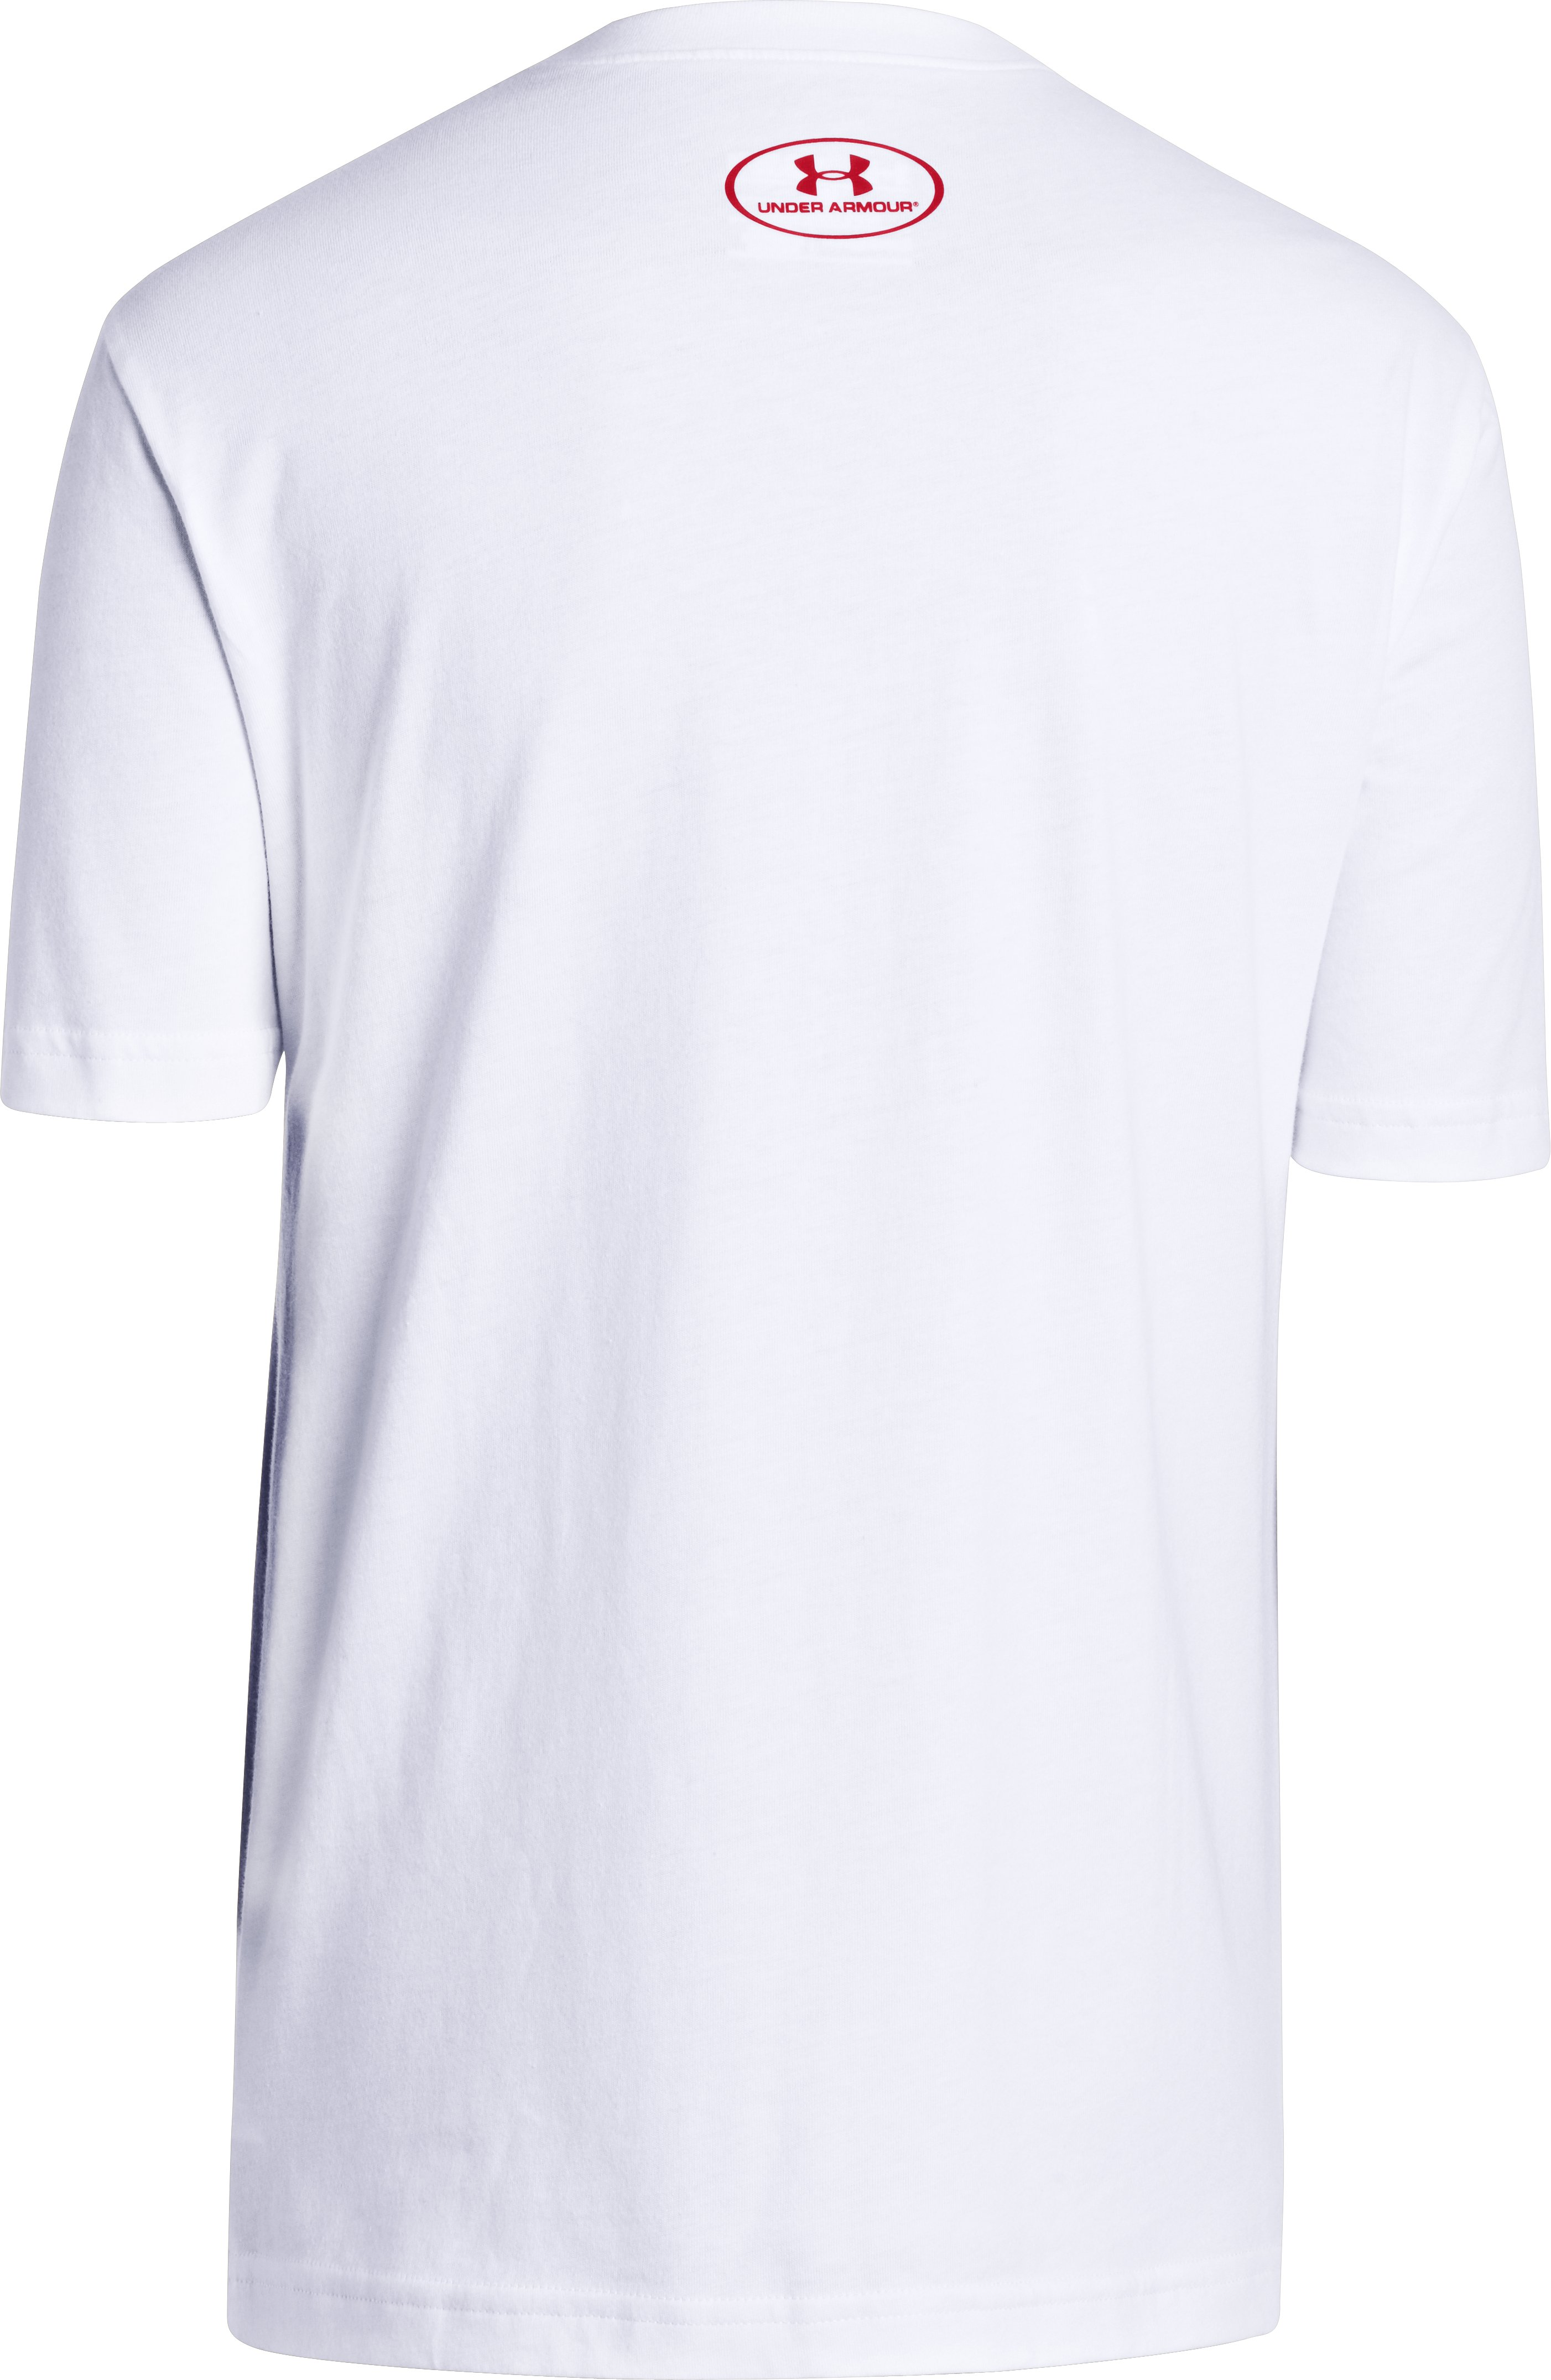 Boys' PTH® T-Shirt, White, undefined